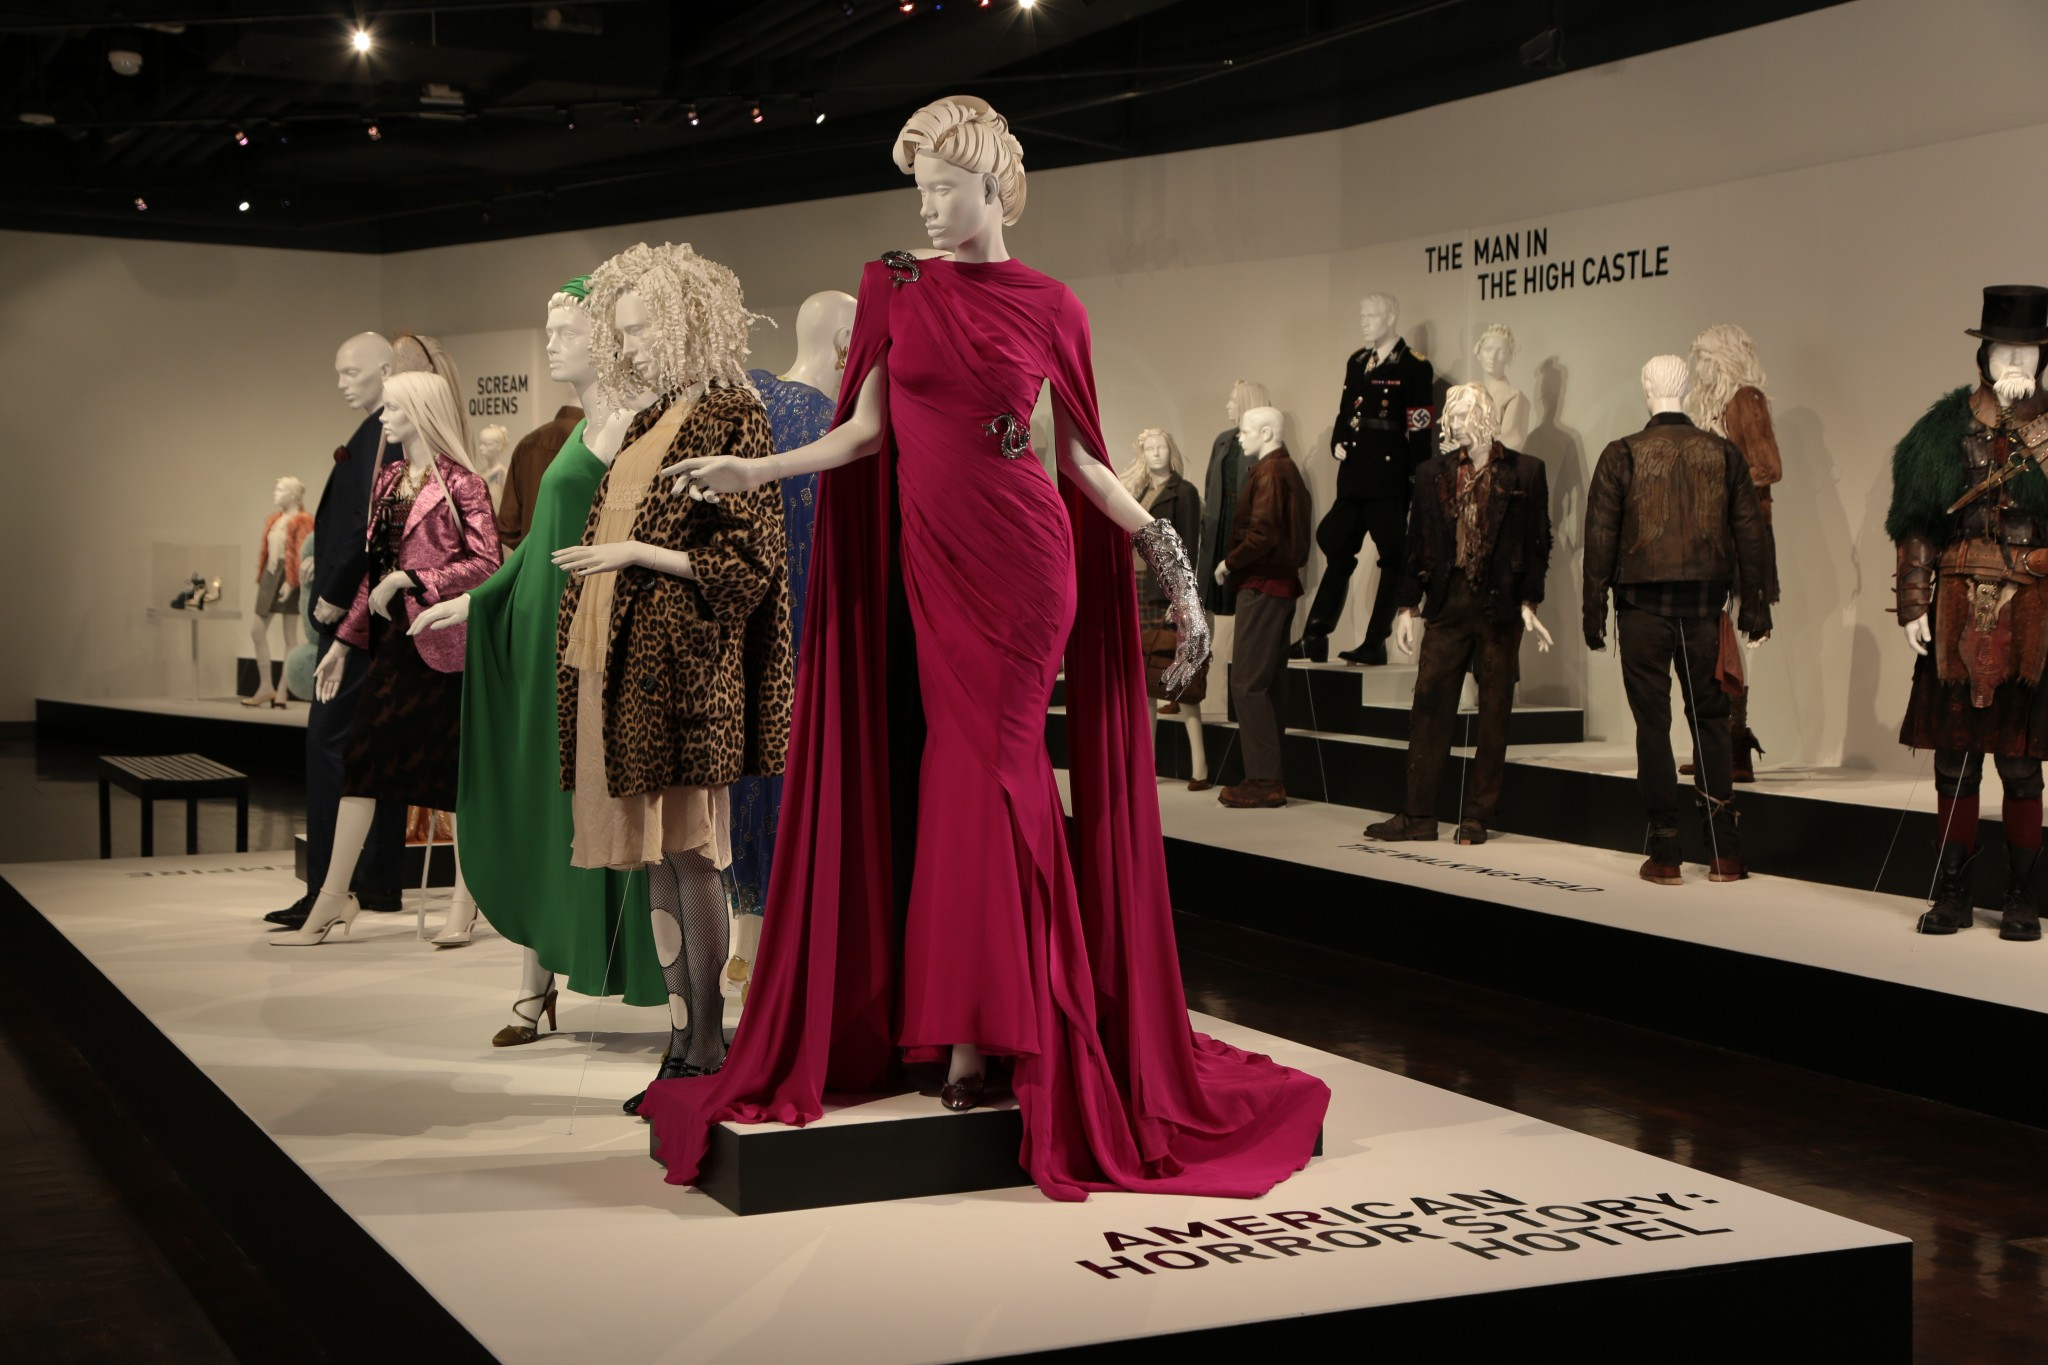 """American Horror Story: Hotel"" costumes, by Costume Designer, Lou Eyrich, nominated for the 2015-2016 Emmy Award for Outstanding Costume Design. These costumes can be seen in the 10th annual ""Art of Television Costume Design"" exhibition in the FIDM Museum at the Fashion Institute of Design & Merchandising, Los Angeles. (L to R) Costumes worn by actors: Lady Gaga as The Countess, Matt Bomer as Donovan, Denis O'Hare as Liz Taylor. (Photo: Benjamin Shmikler/ABImages)"